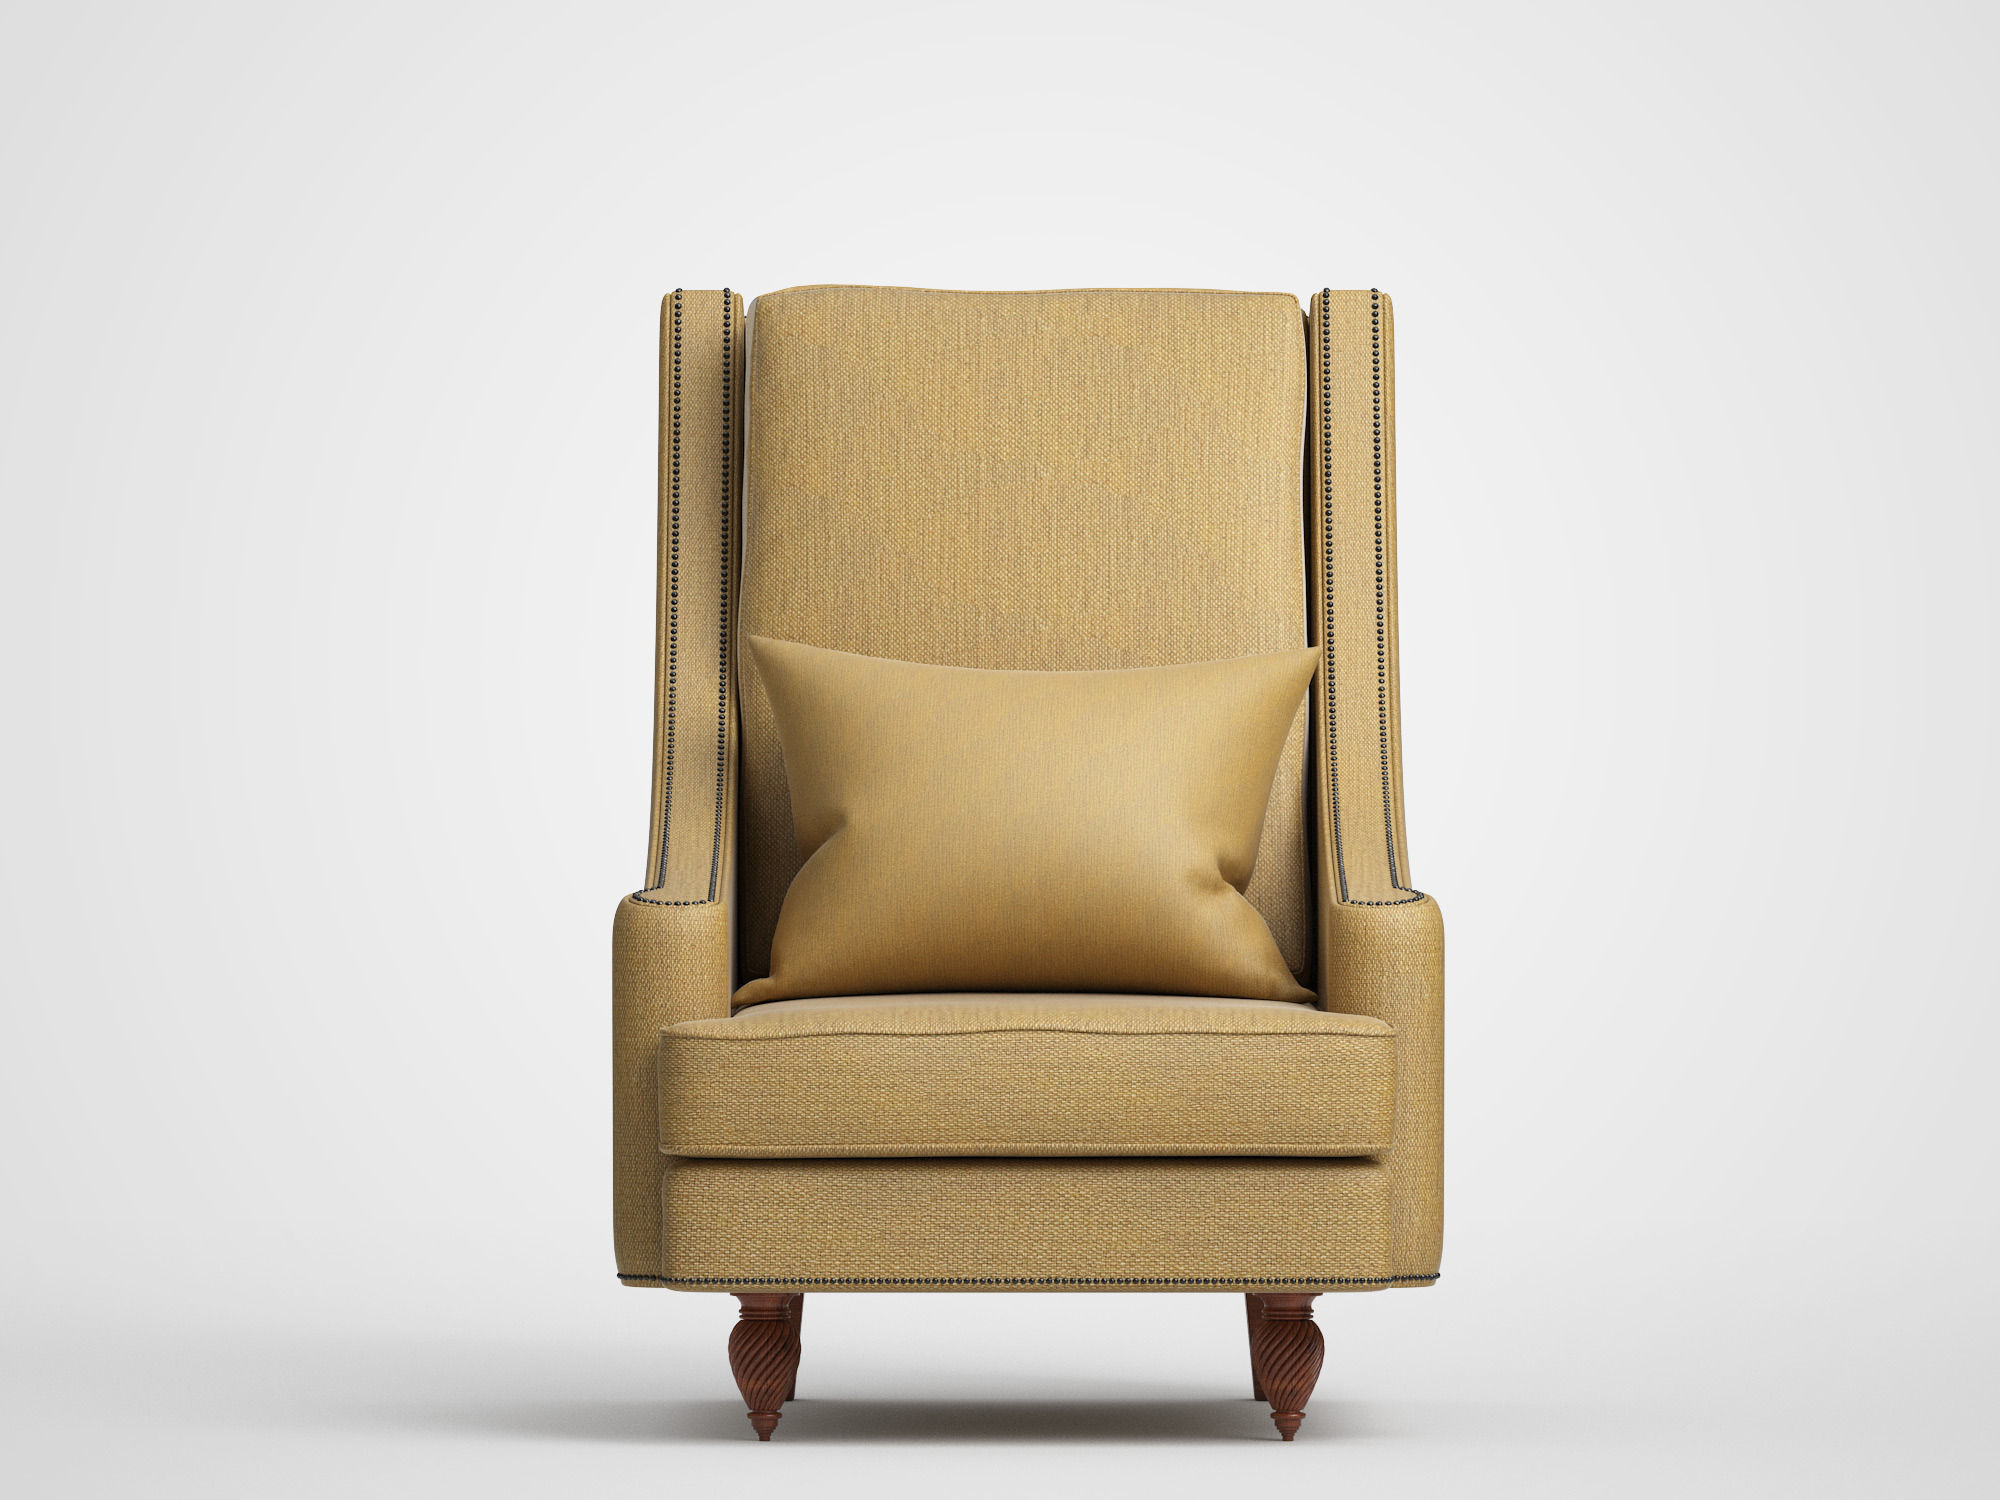 couch Classic Chair 3D model